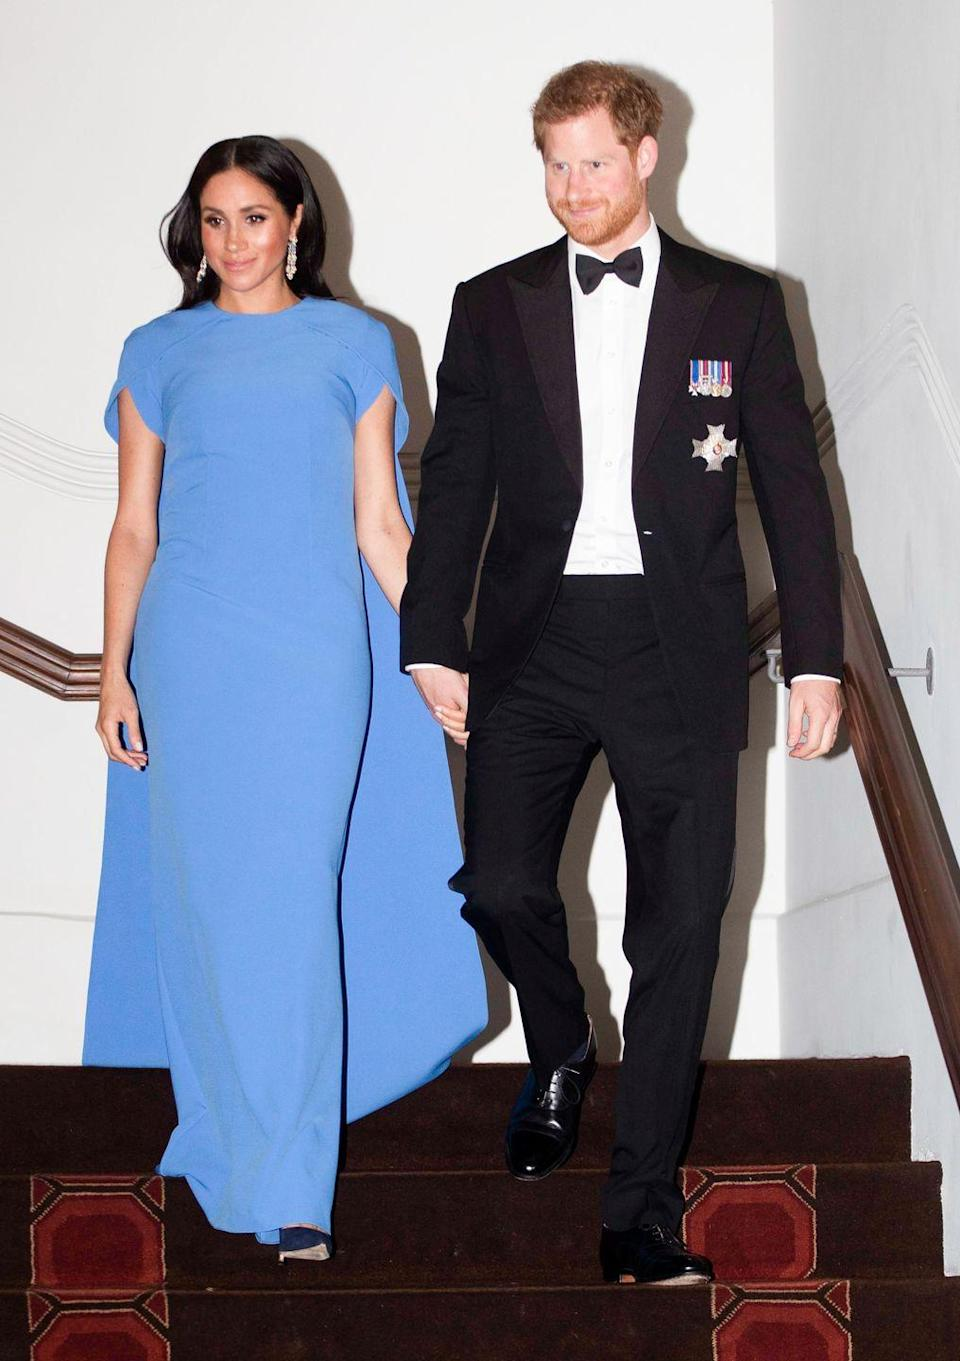 """<p>For a state dinner in Fiji, the Duchess dressed up in a bright blue caped gown by London-based <a href=""""https://www.safiyaa.com/pages/about"""" rel=""""nofollow noopener"""" target=""""_blank"""" data-ylk=""""slk:designer Safiyaa"""" class=""""link rapid-noclick-resp"""">designer Safiyaa</a>. She accessorized with diamond drop earrings and a sleek blowout.</p>"""